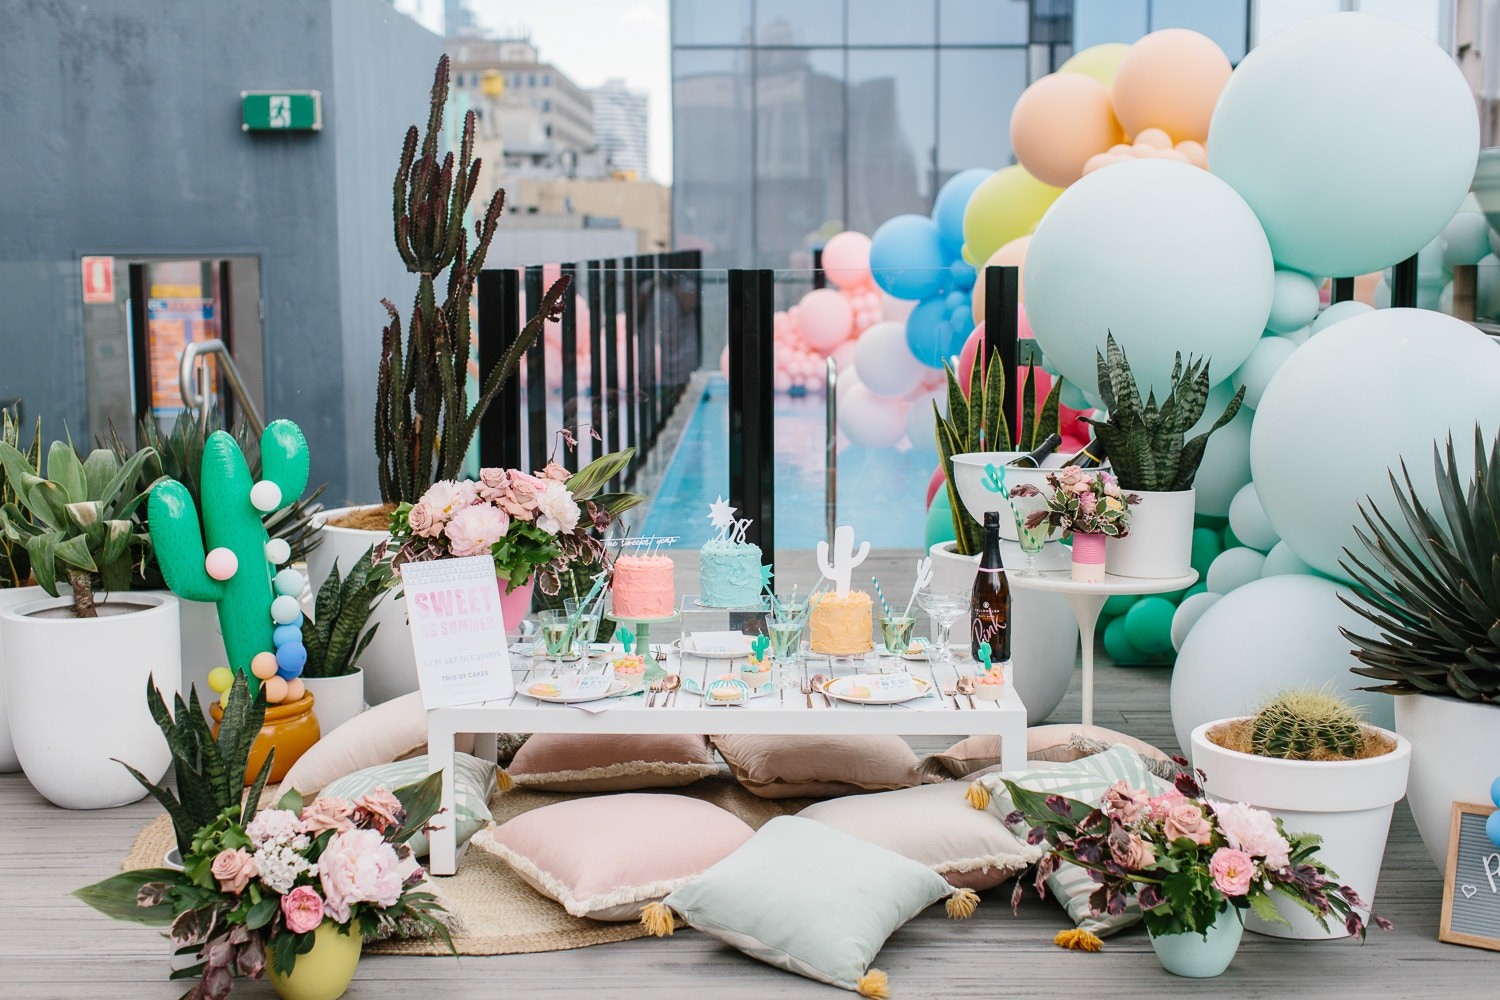 THE PERFECT PASTEL POOL PARTY - NEW YEAR'S EVE PARTY INSPIRATION